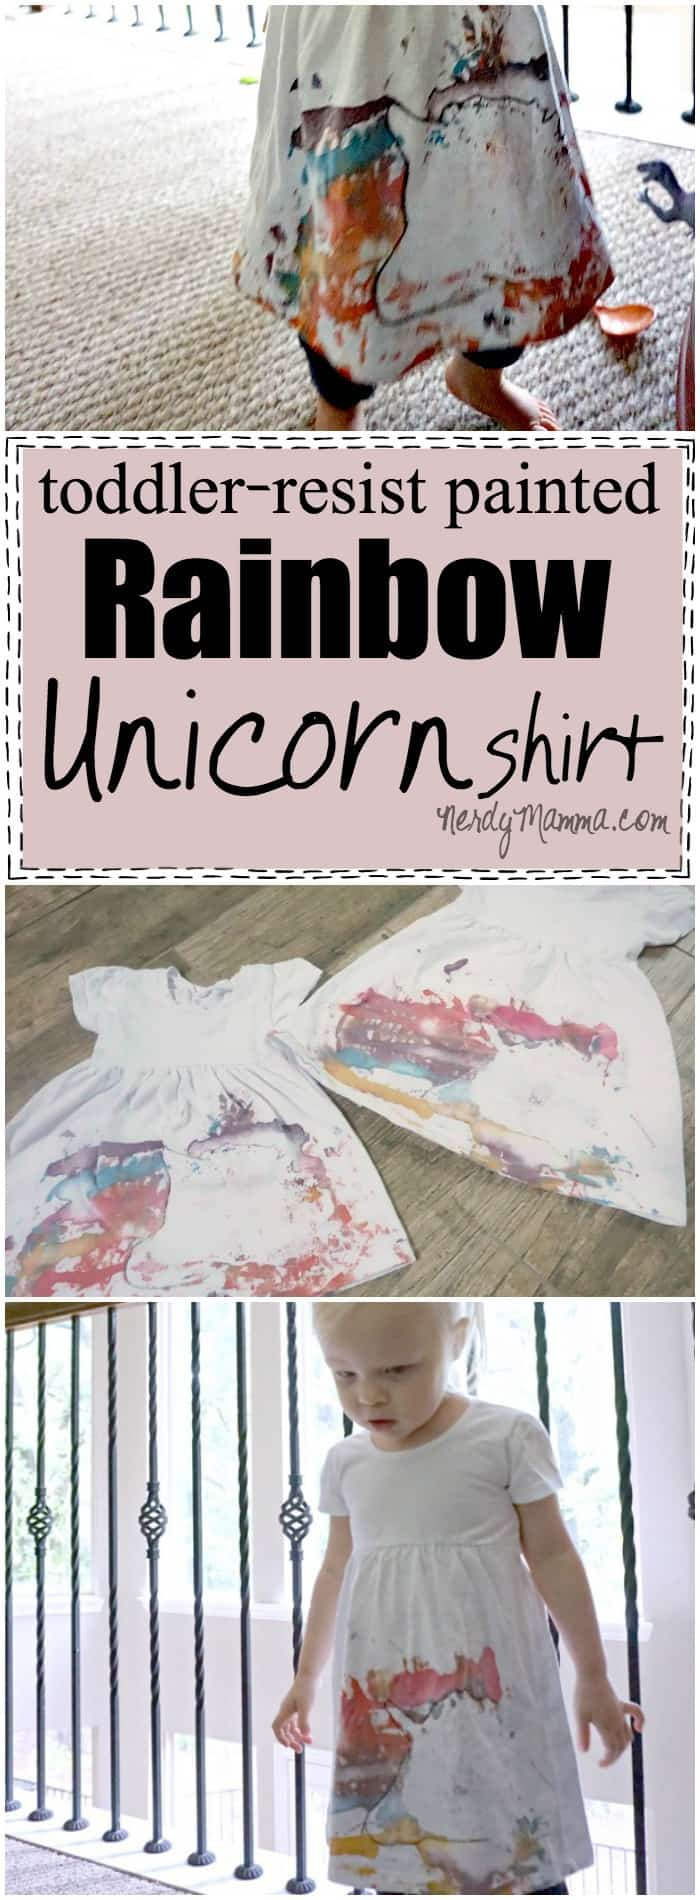 This idea for a toddler-resist painted rainbow unicorn shirt (or rhino--LOL!) is so cute! And so much fun to make!